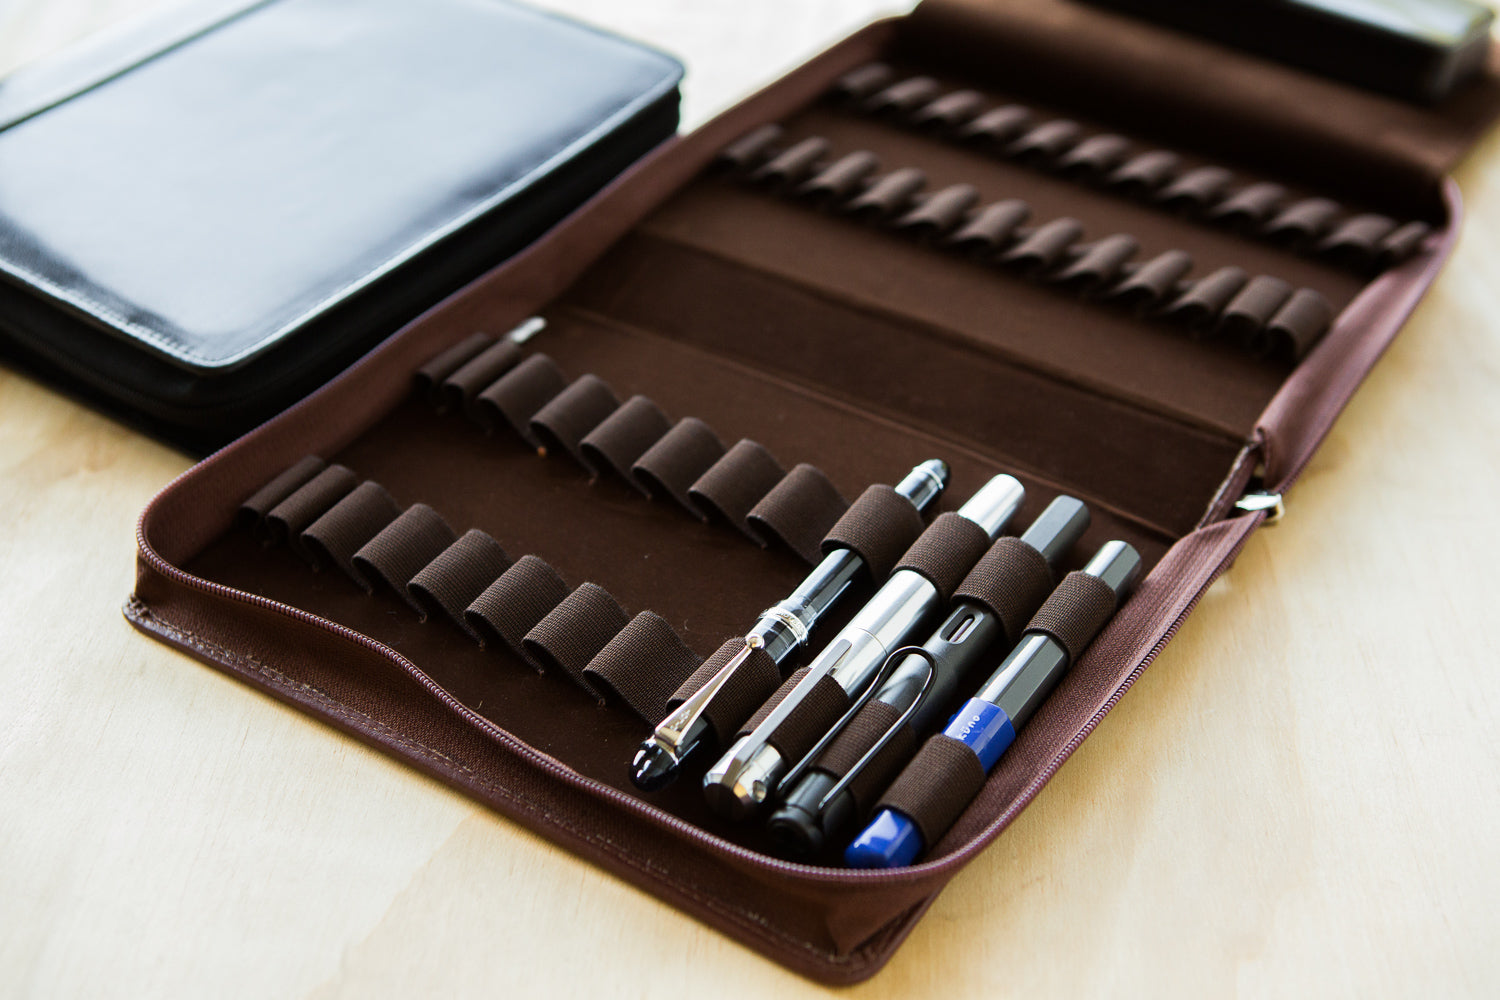 Girologio 24 Pen Case - Oxblood